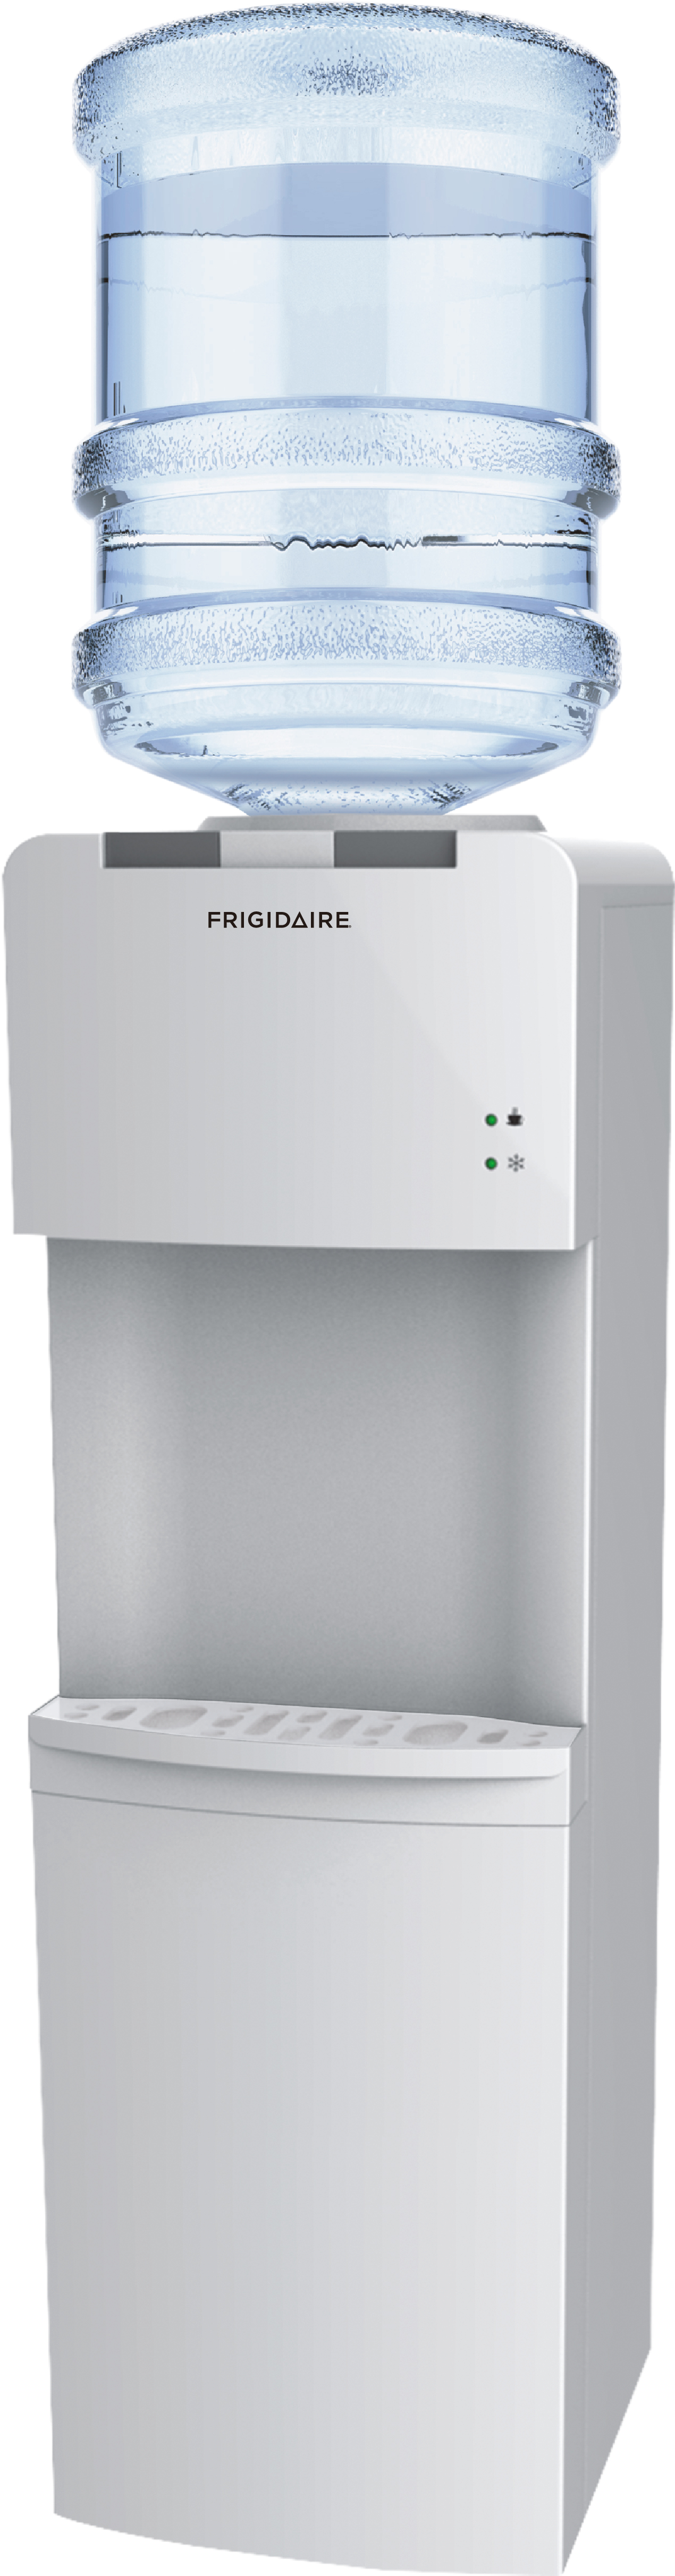 Frigidaire Water Cooler/Dispenser (White)